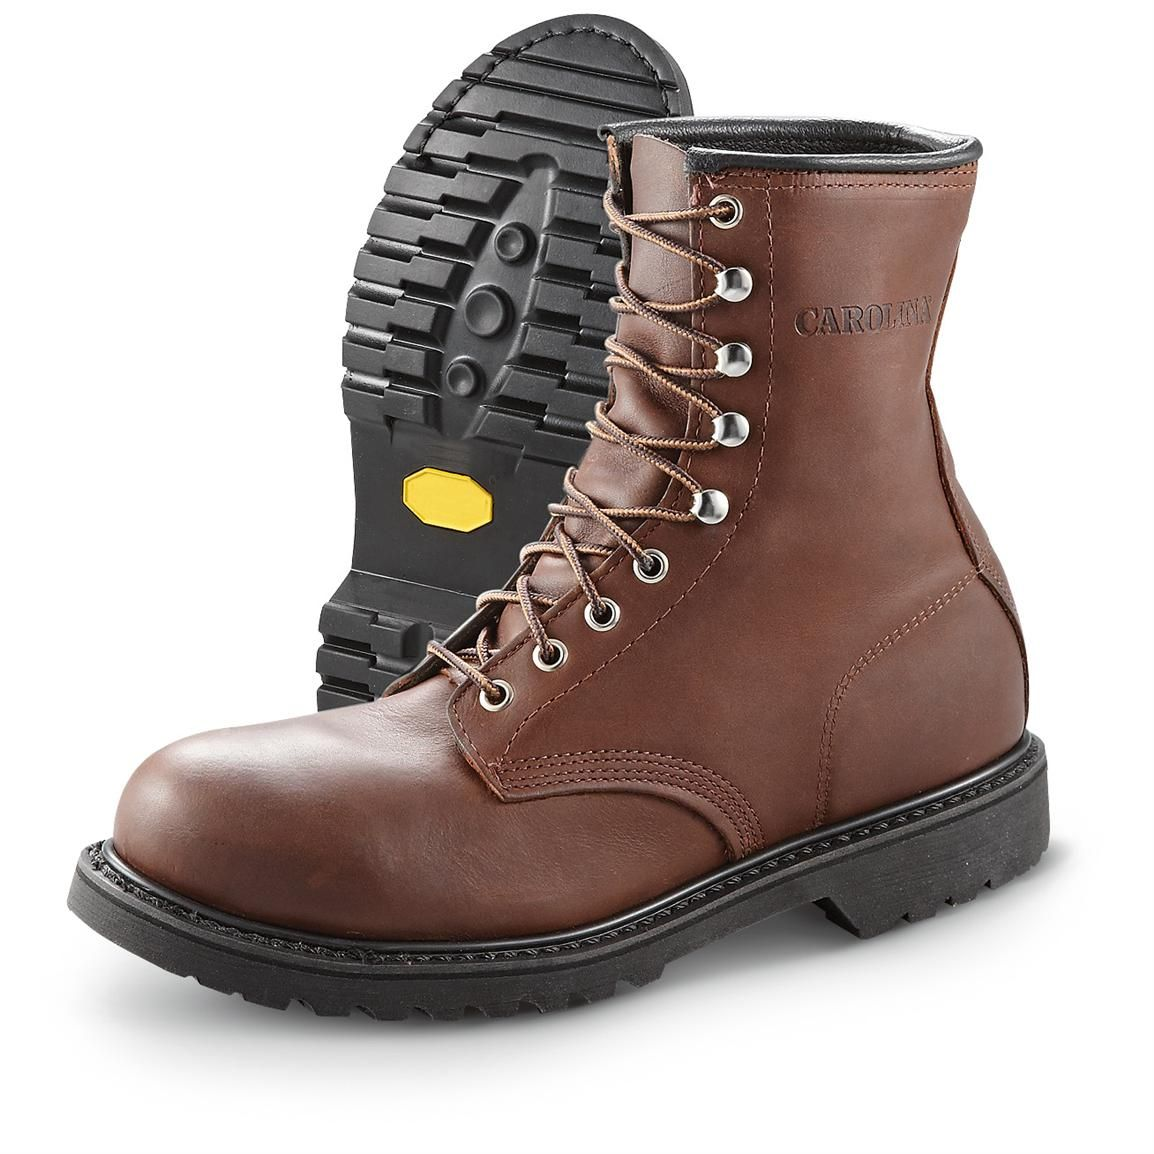 All You Need to Know about Men's Steel Toe Boots Buying Decision ...